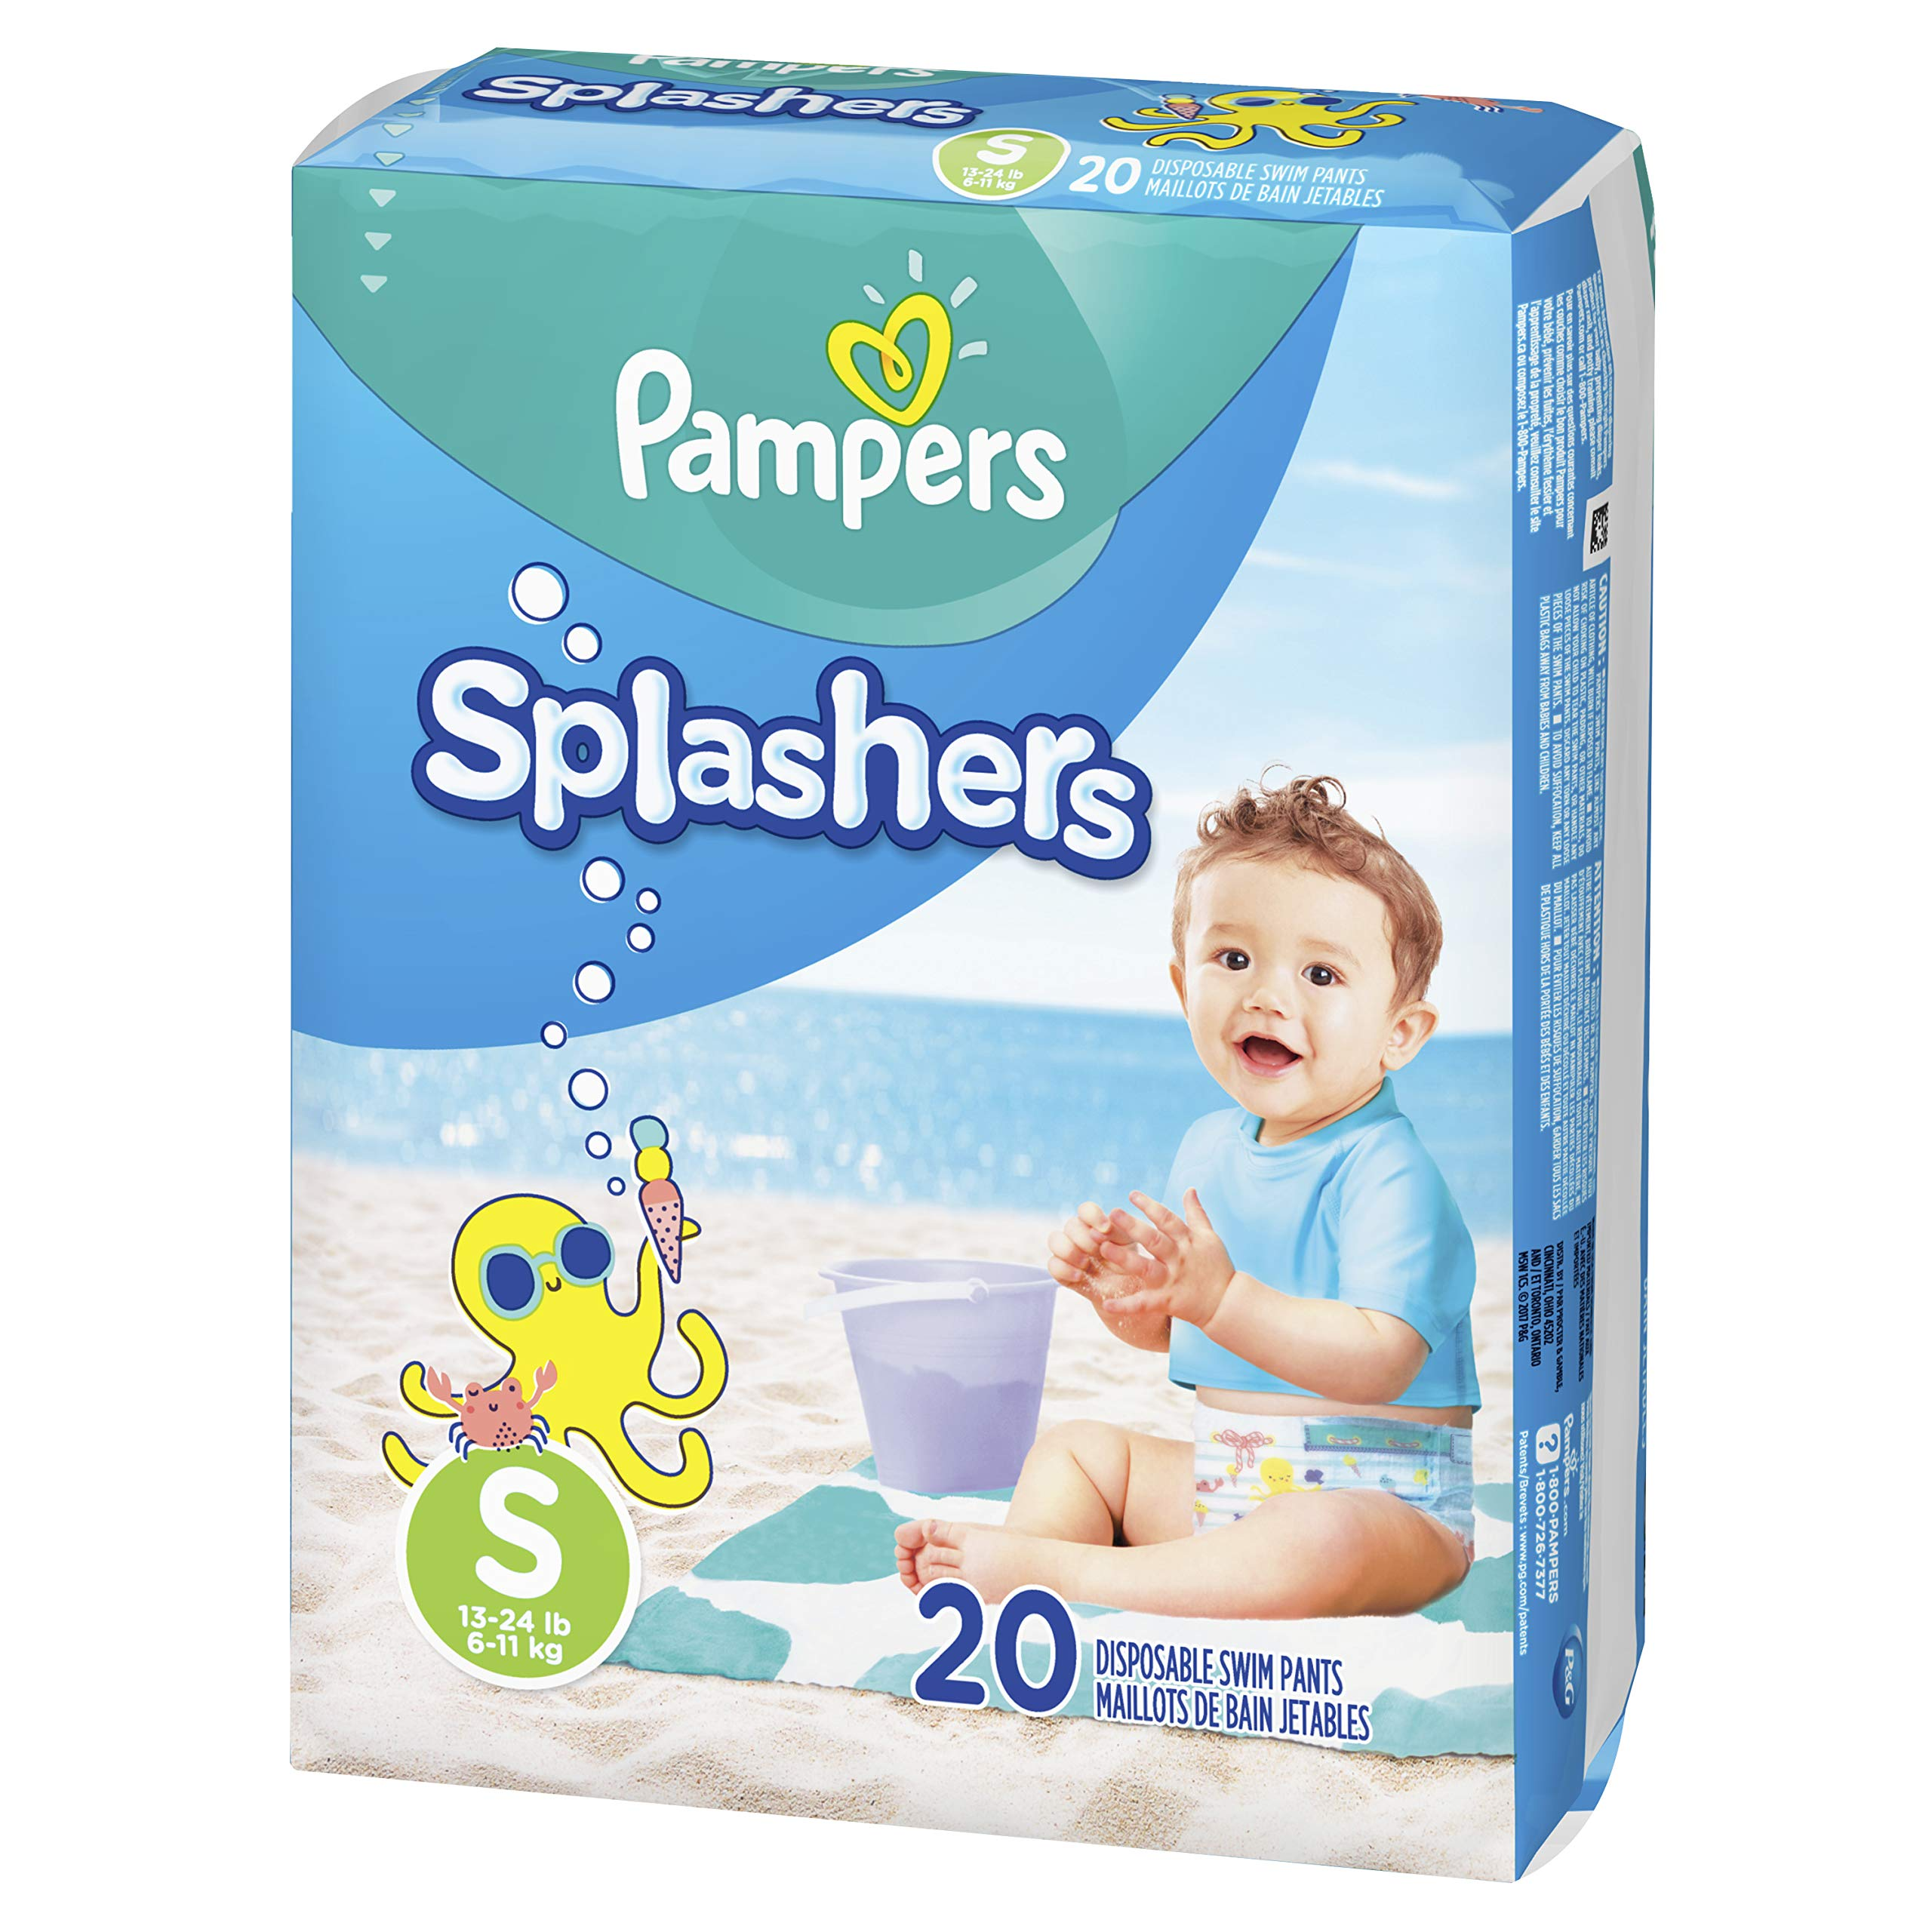 Swim Diapers Size 3 (13-24 lb), 20 Count - Pampers Splashers Disposable Swim Pants, Small by Pampers